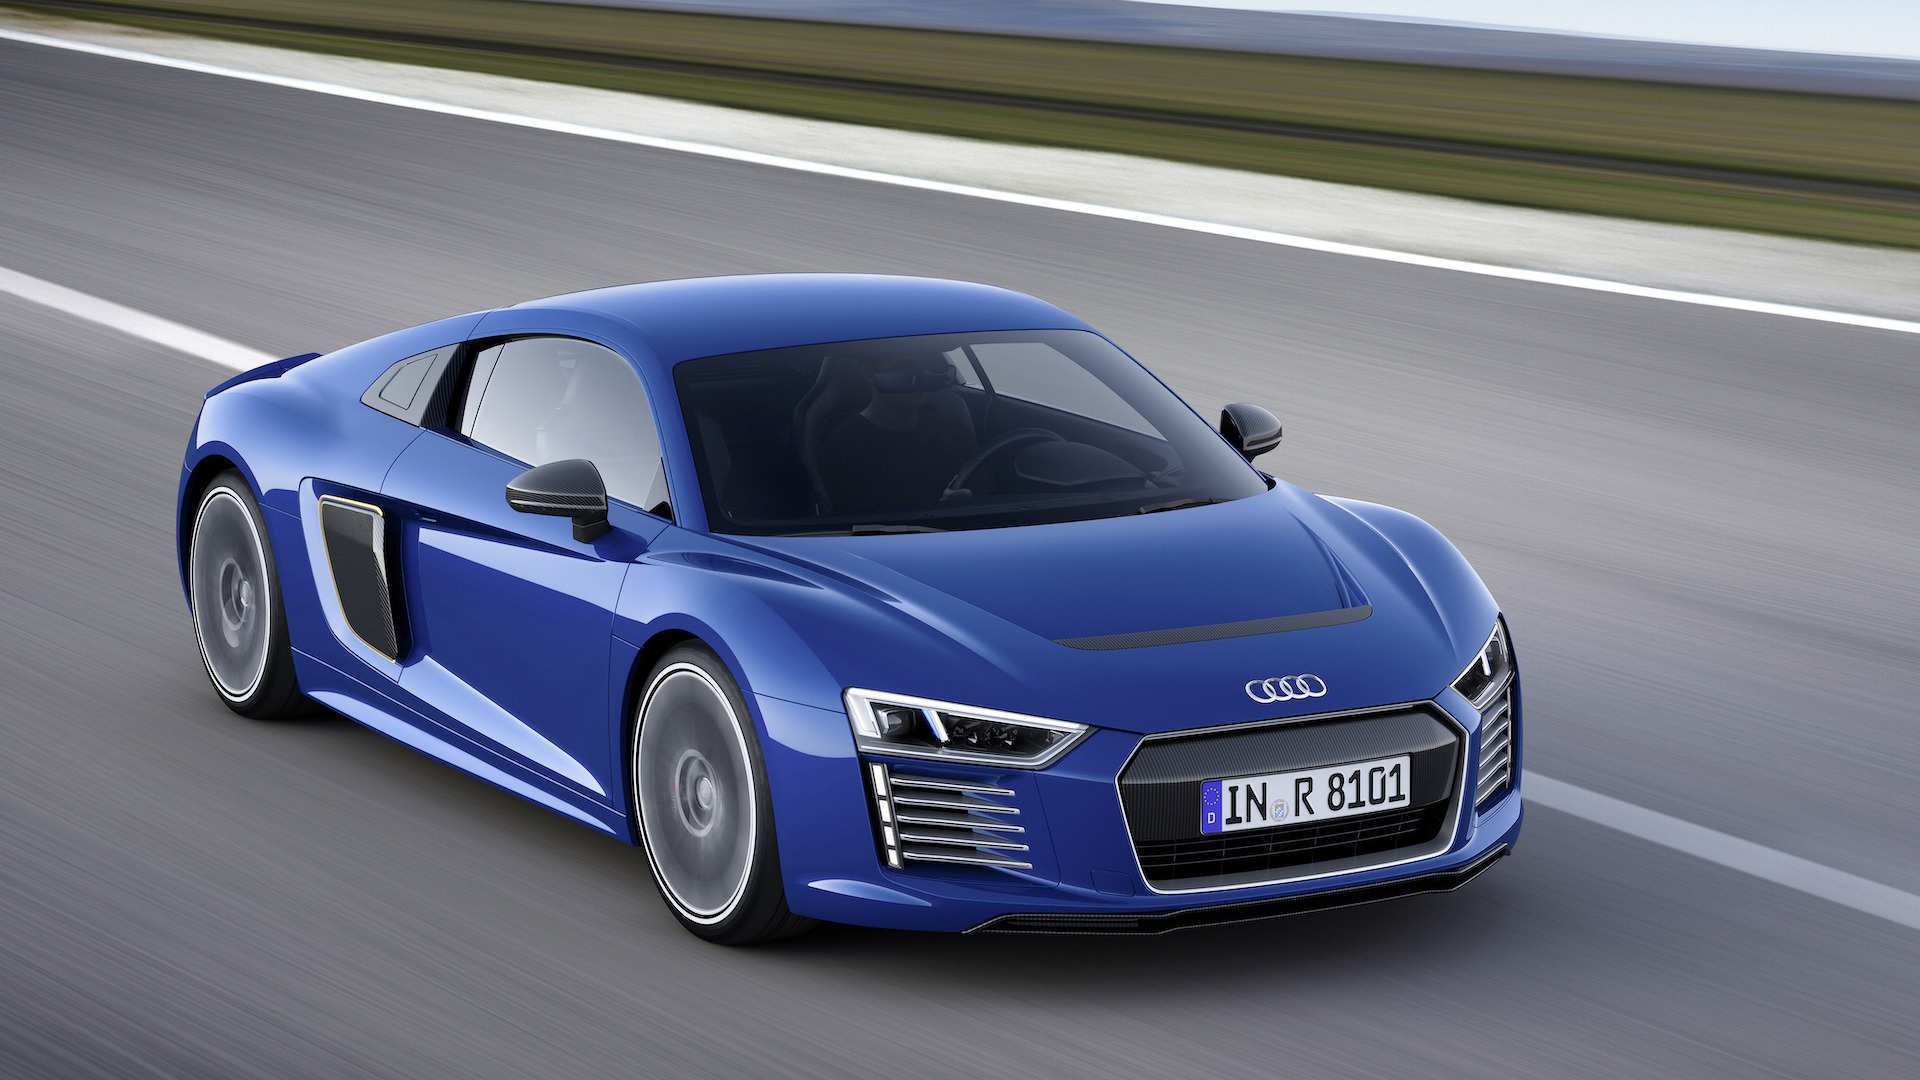 79 New 2020 Audi R8 E Tron Performance